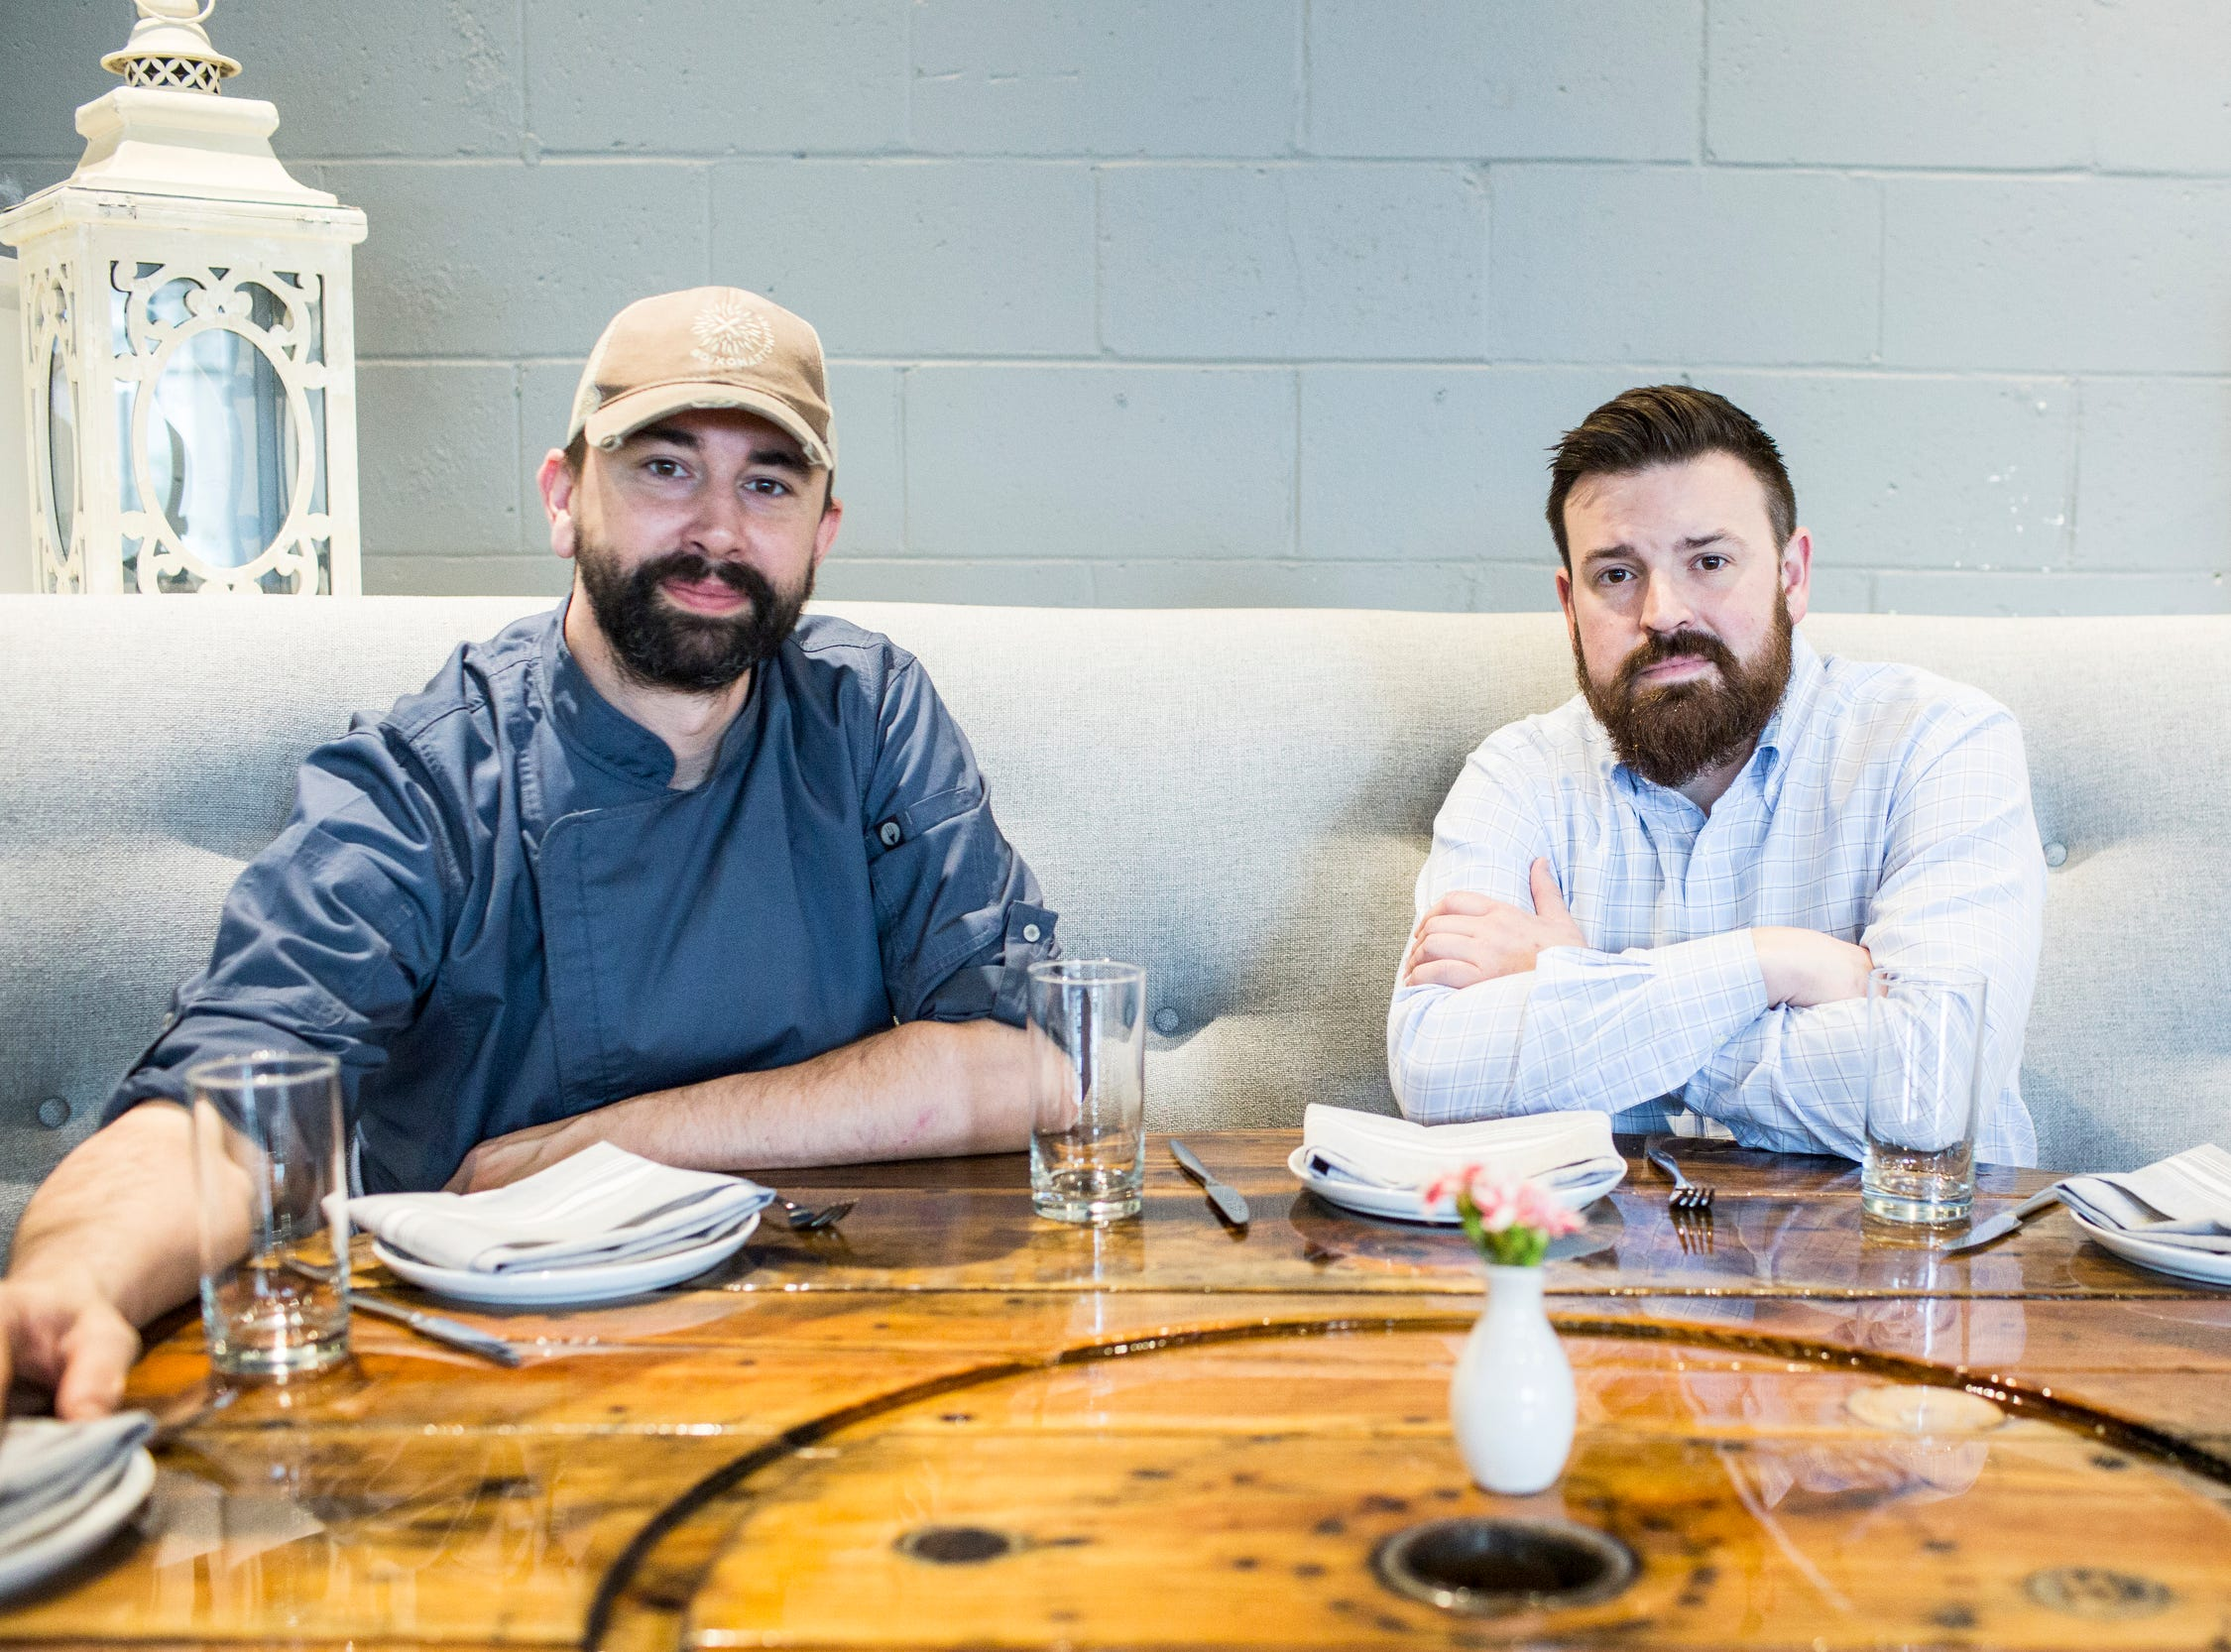 February 10, 2019 - Chef Jimmy Gentry, left, and co-owner Chris Thorn at PO Press Public House & Provisions in Collierville. PO Press Public House & Provisions is located at 148 N Main St. in Collierville.